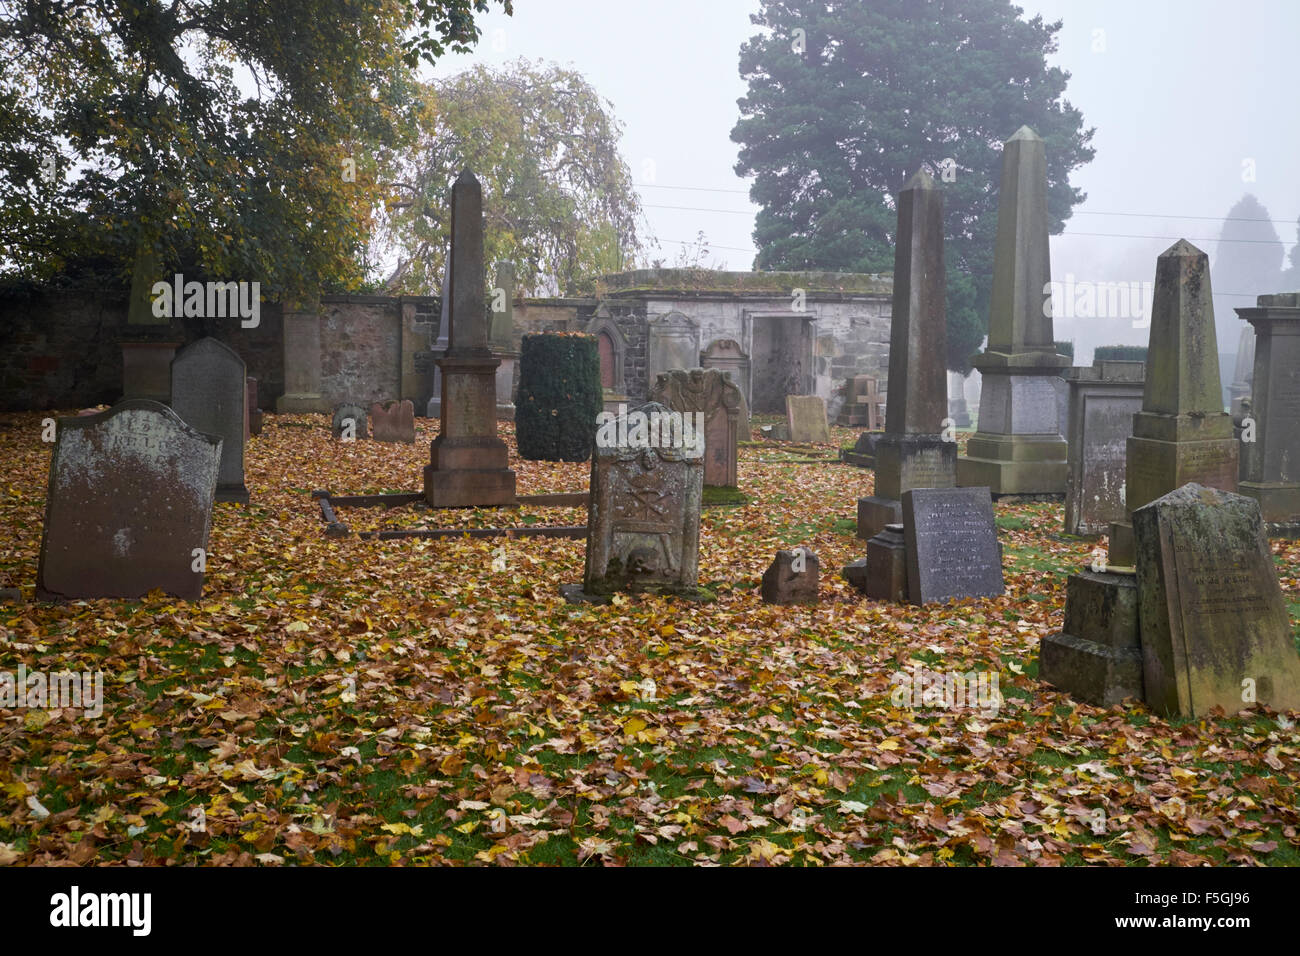 MISTY GRAVEYARD, CEMETERY, HADDINGTON, SCOTLAND, SAINT MARY'S CHURCH, EAST LOTHIAN - Stock Image